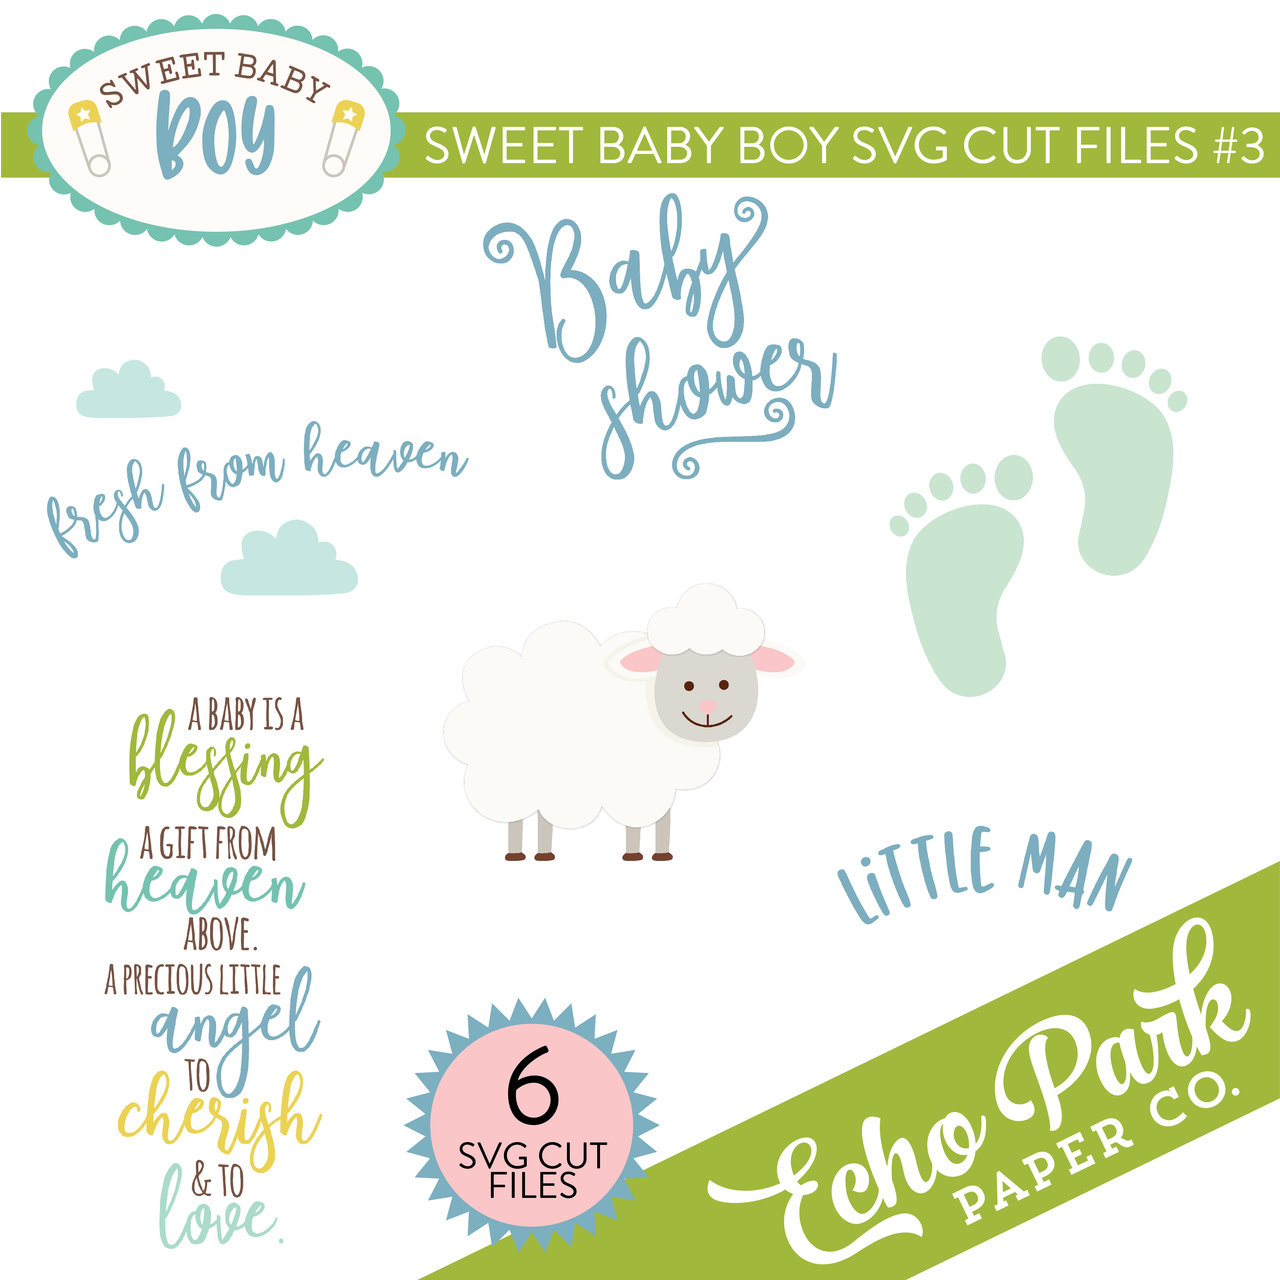 Sweet Baby Boy SVG Cut Files #3